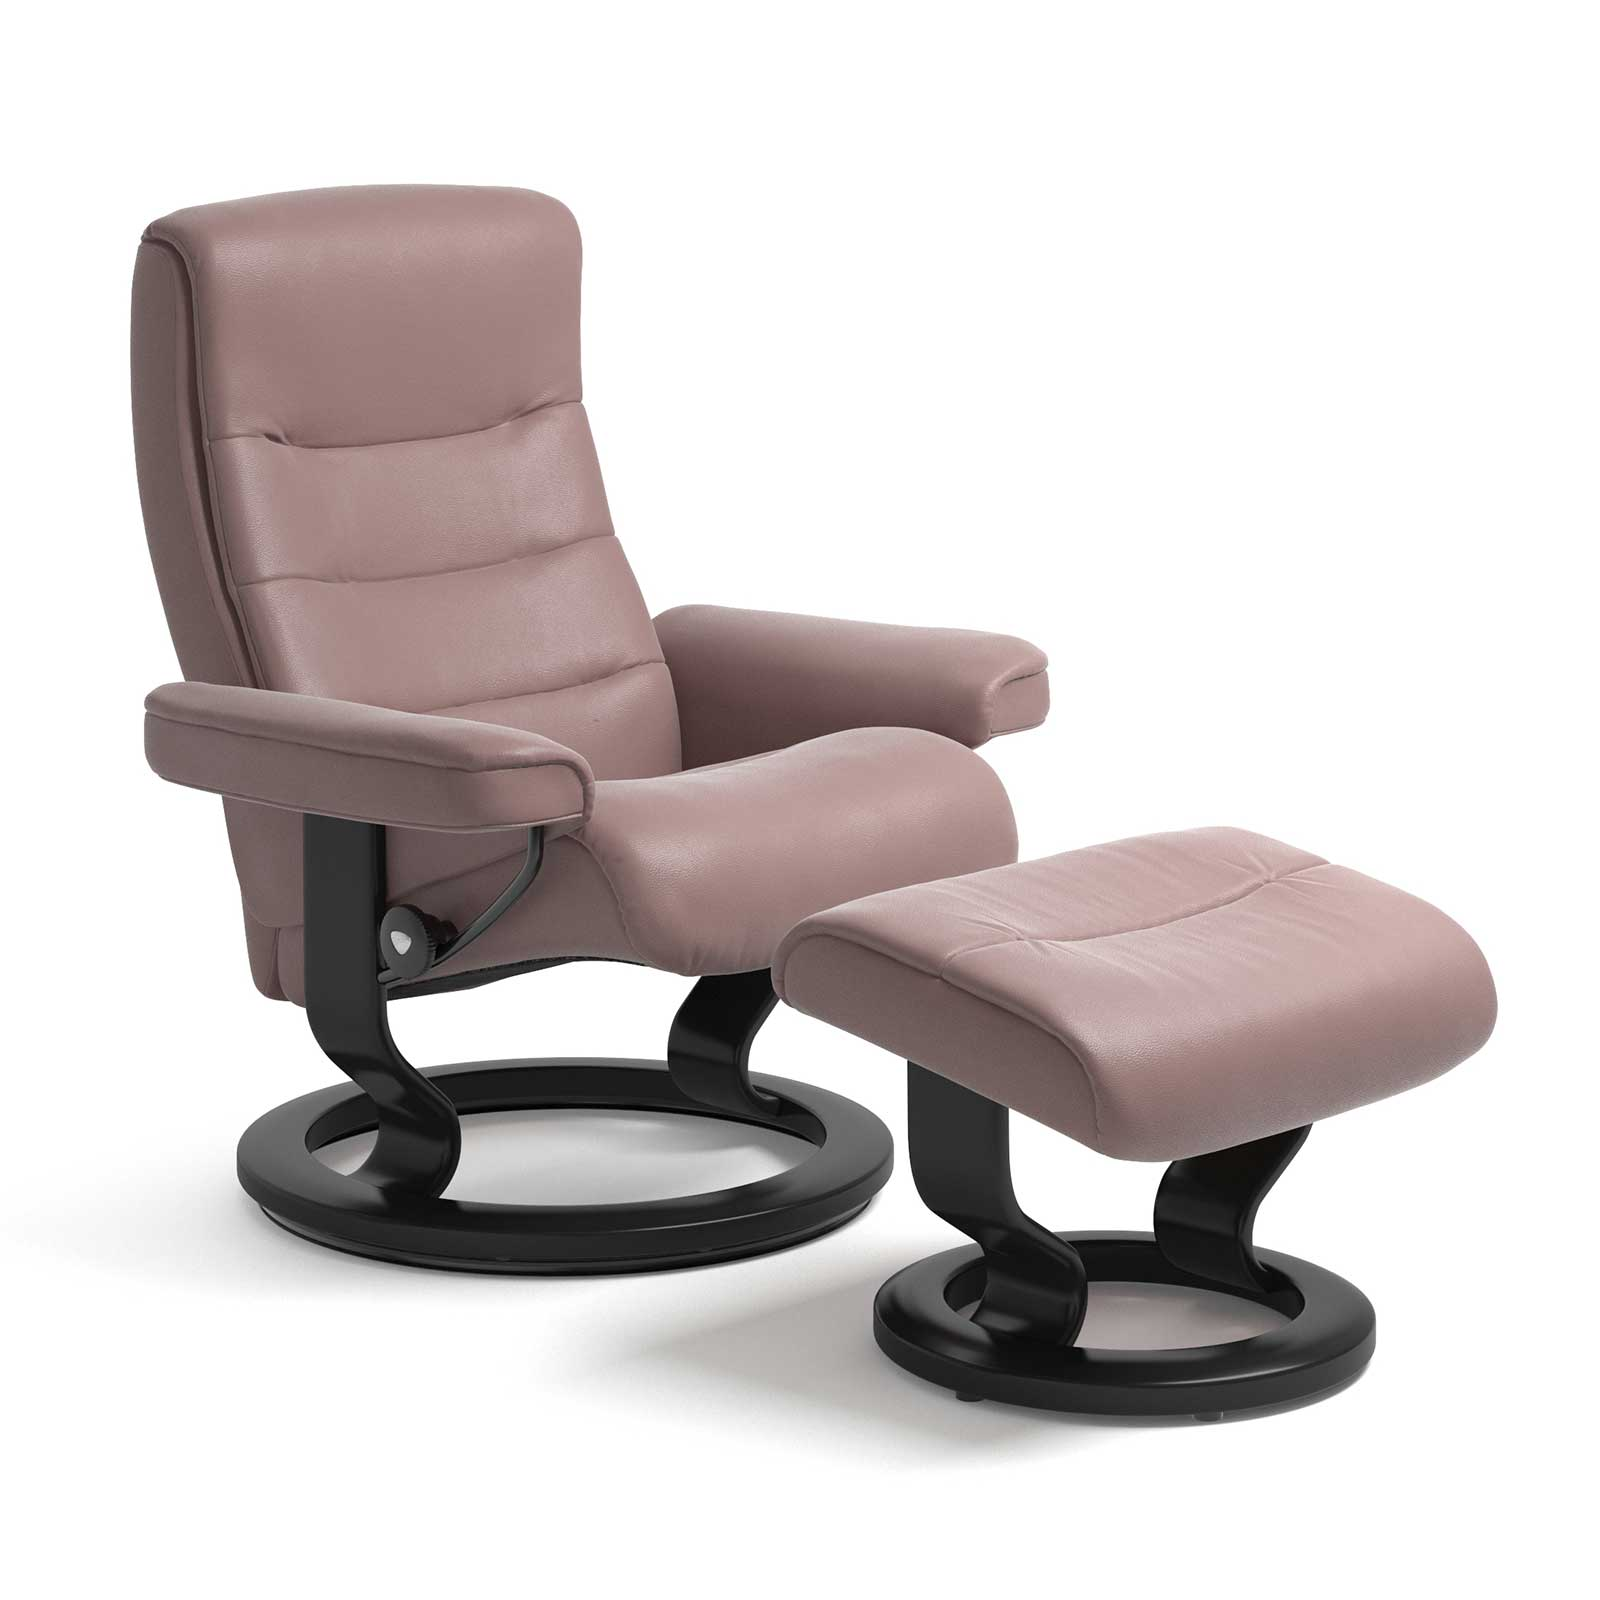 Stressless Sessel Nordic Paloma Dusty Rose Mit Hocker Stressless